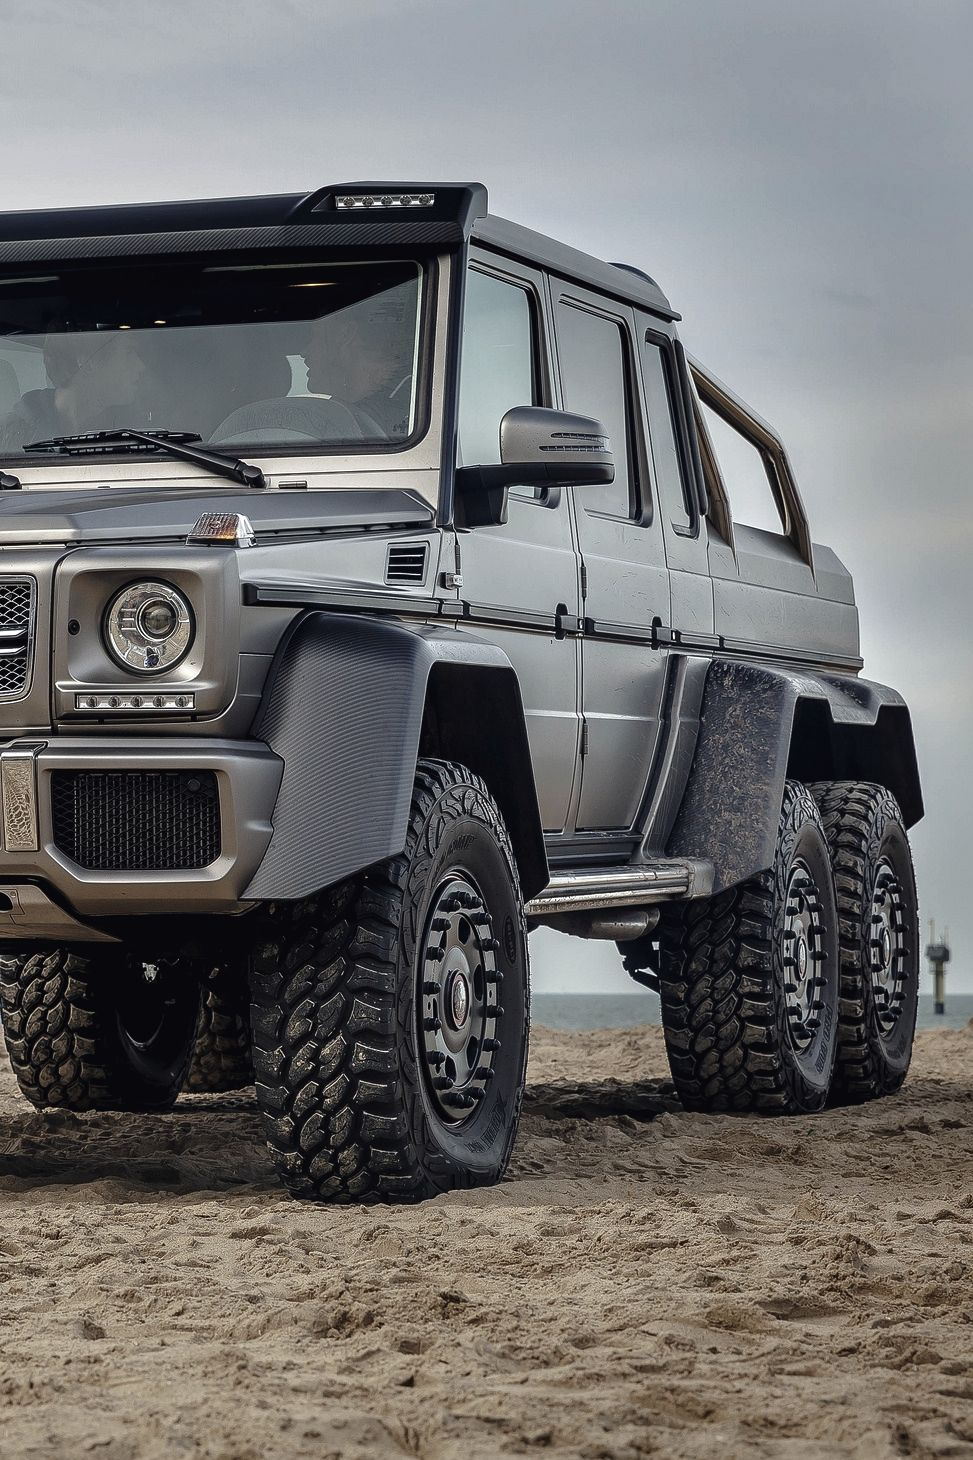 Vistale mercedes g63 6x6 via g klass pinterest cars mercedes benz and 4x4 - Classe g 6x6 ...